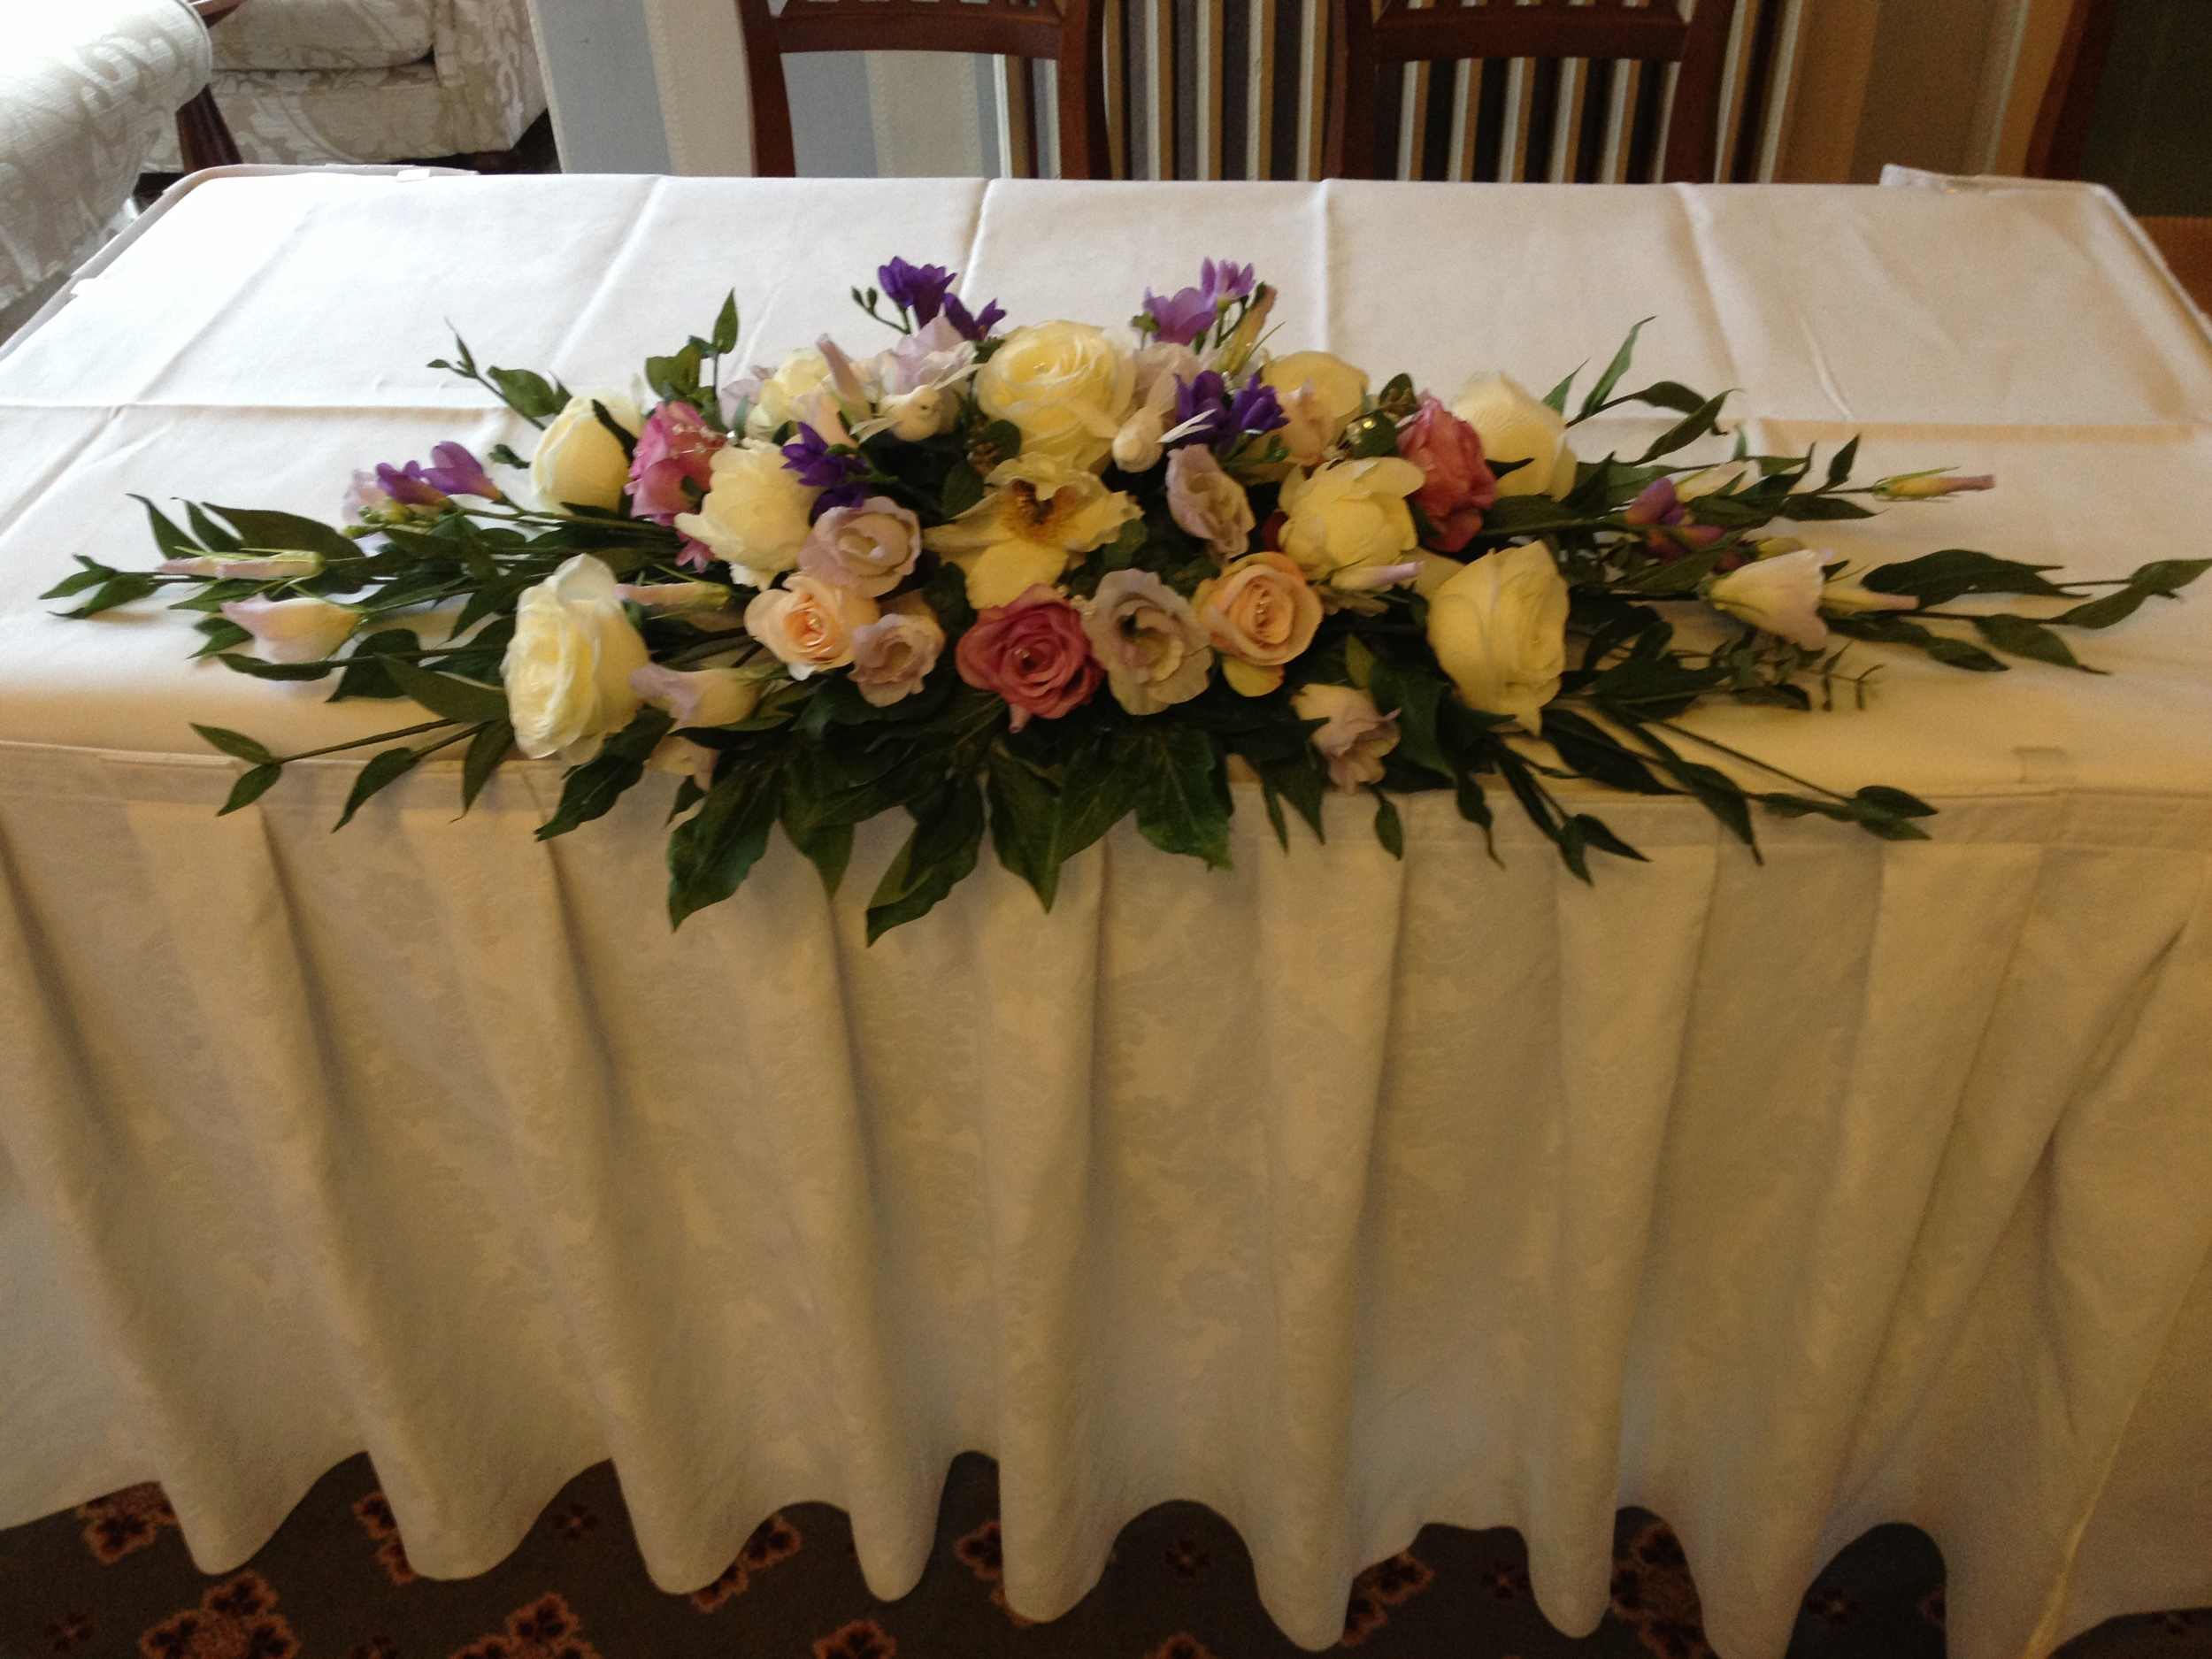 Ceremony Table Display - With Cream Peonies & Roses, Vintage Pink Roses, Ivory Lisianthus & Greenery